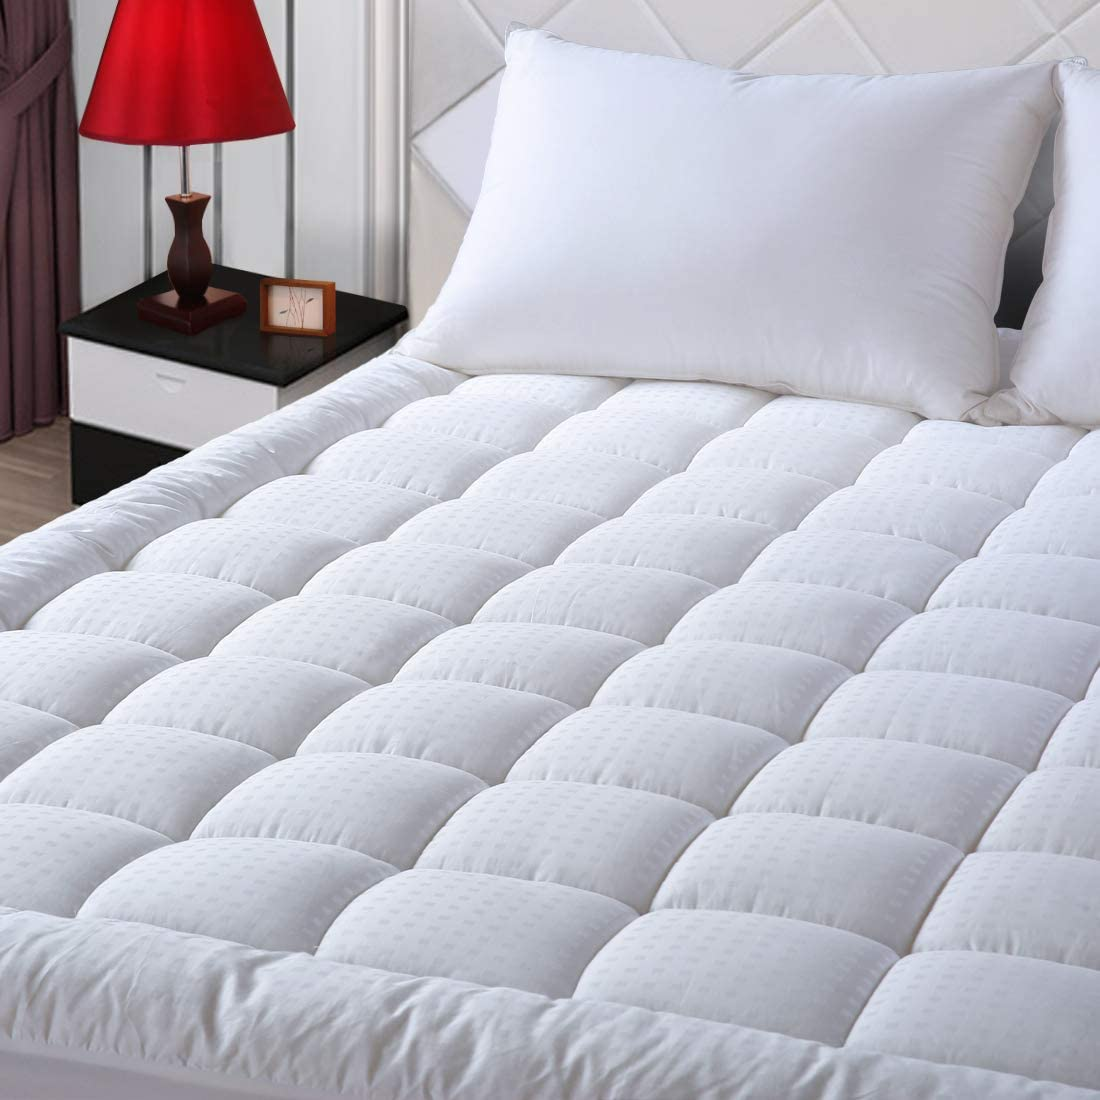 EASELAND Pillow Top Cooling Mattress Topper